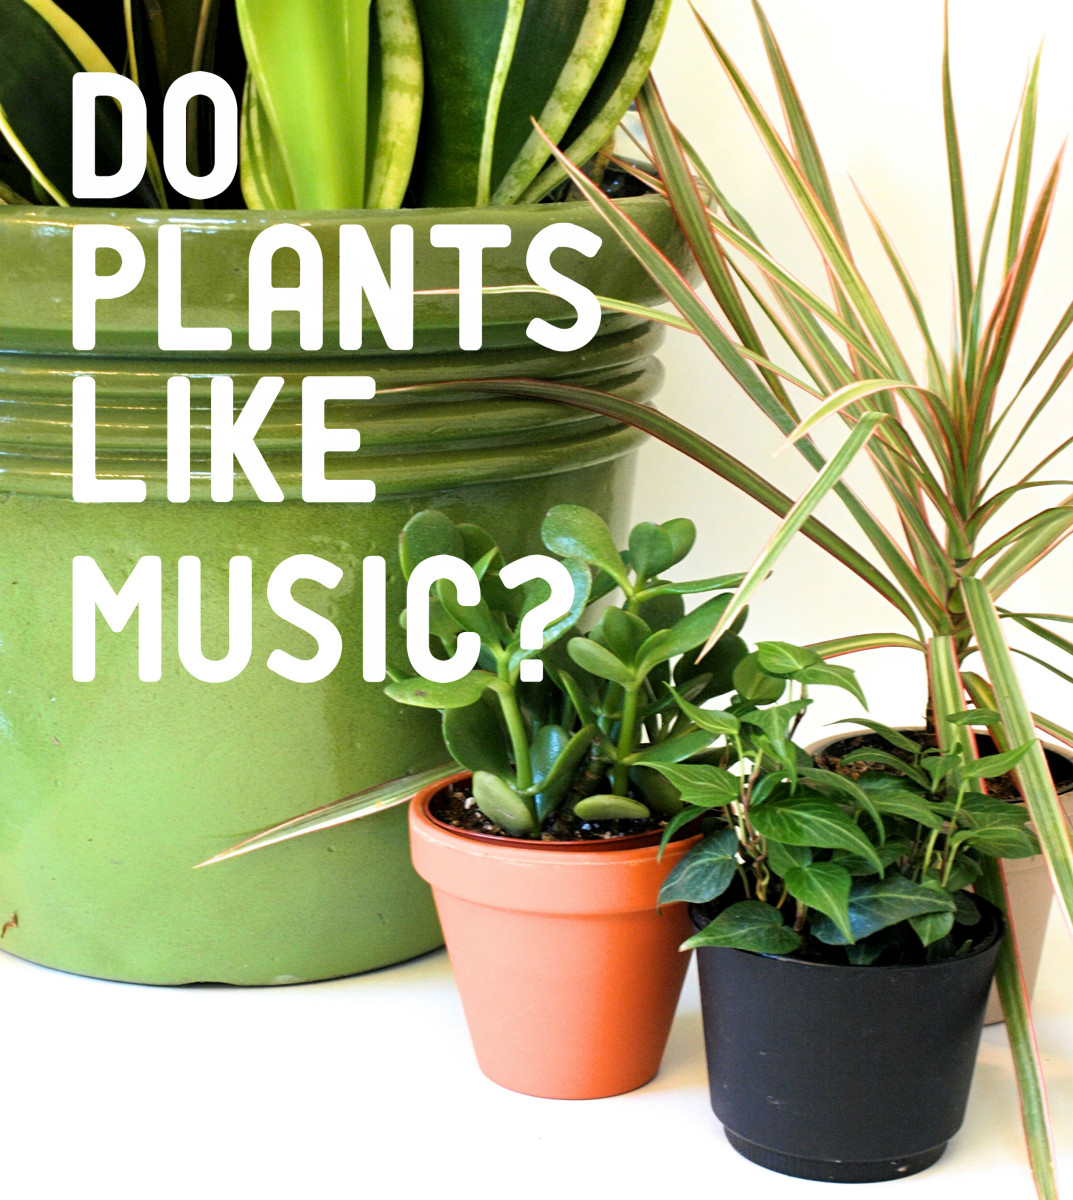 so that you can weigh the evidence and draw your own conclusions first we ll discuss the studies that support the idea that music helps plants grow